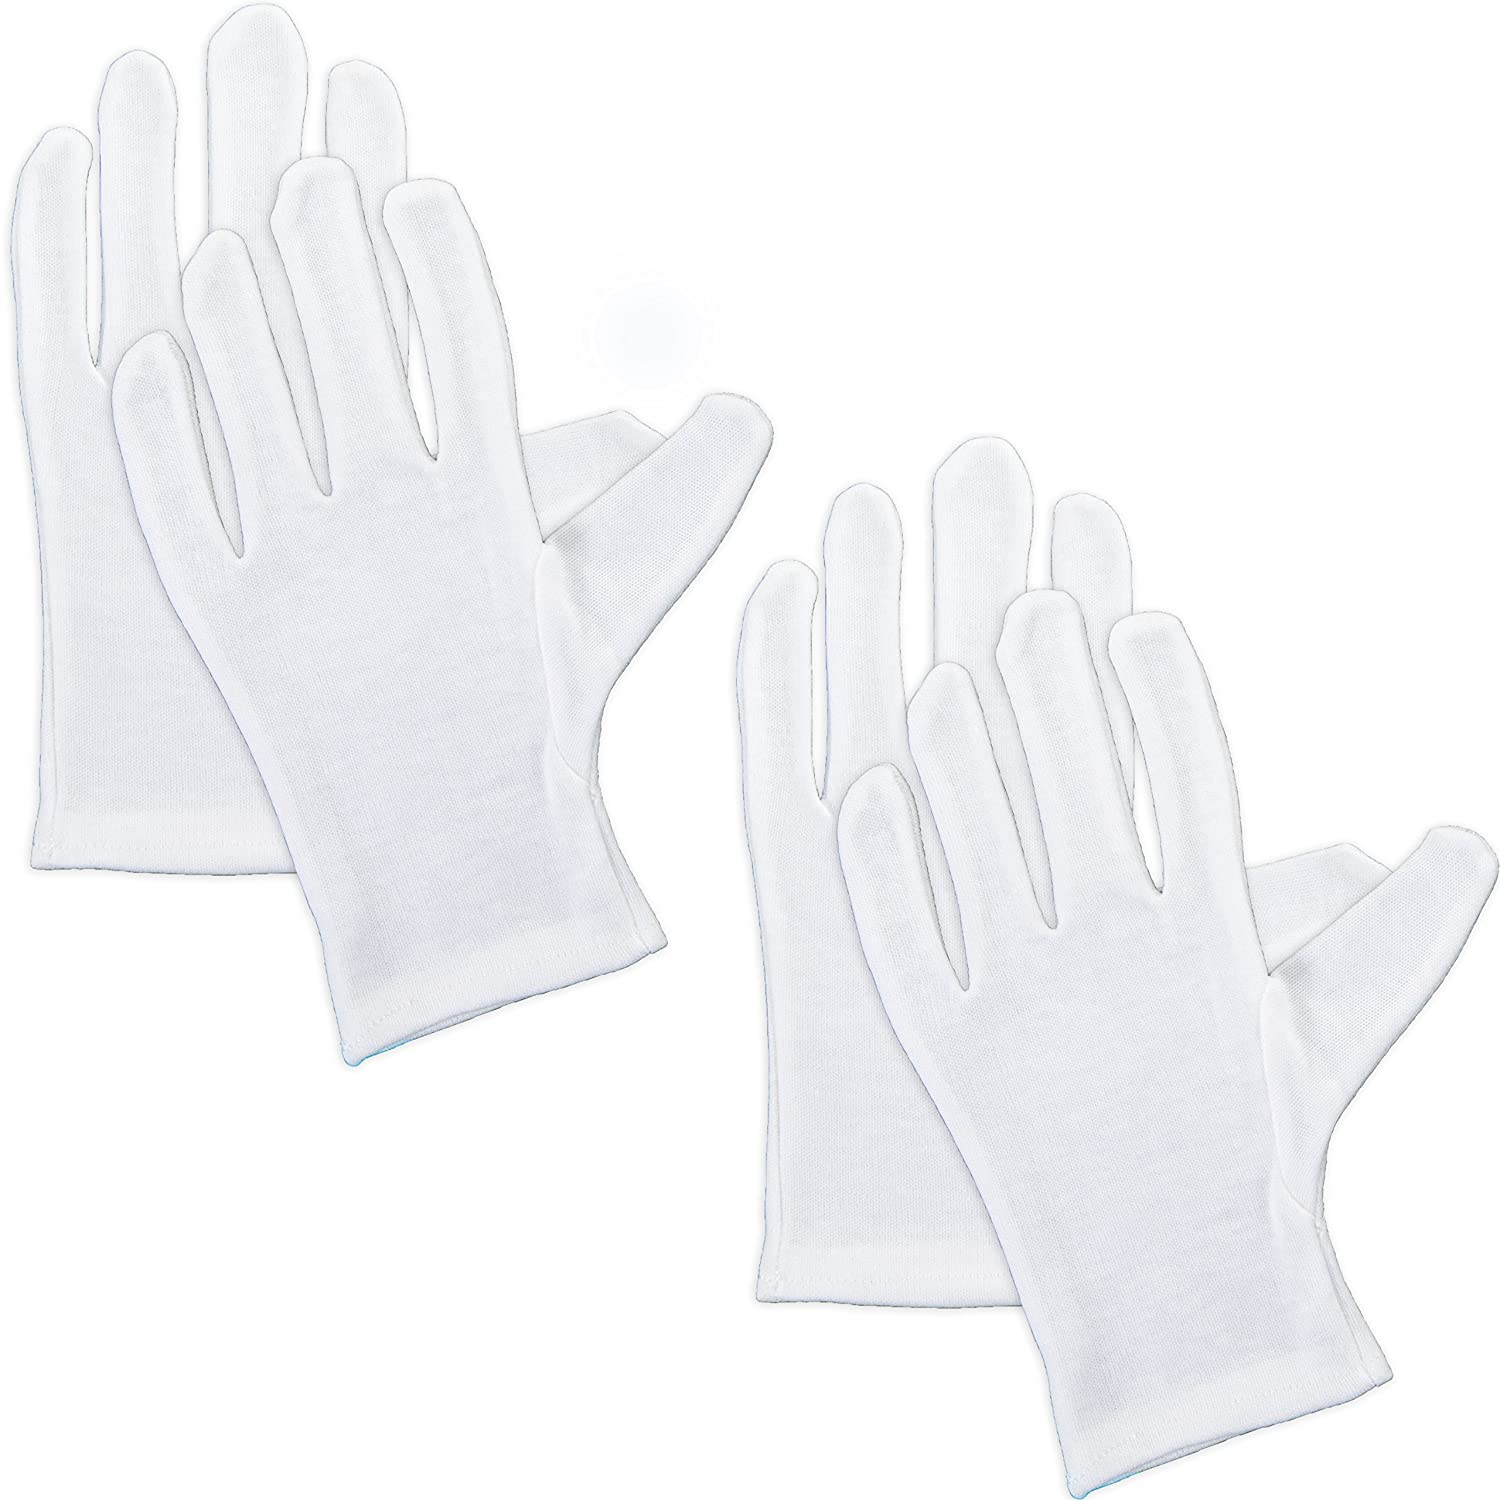 2x Pairs Of Moisture Retaining Gloves | For Overnight Hand Cream/Masks &Treatments White Hinge